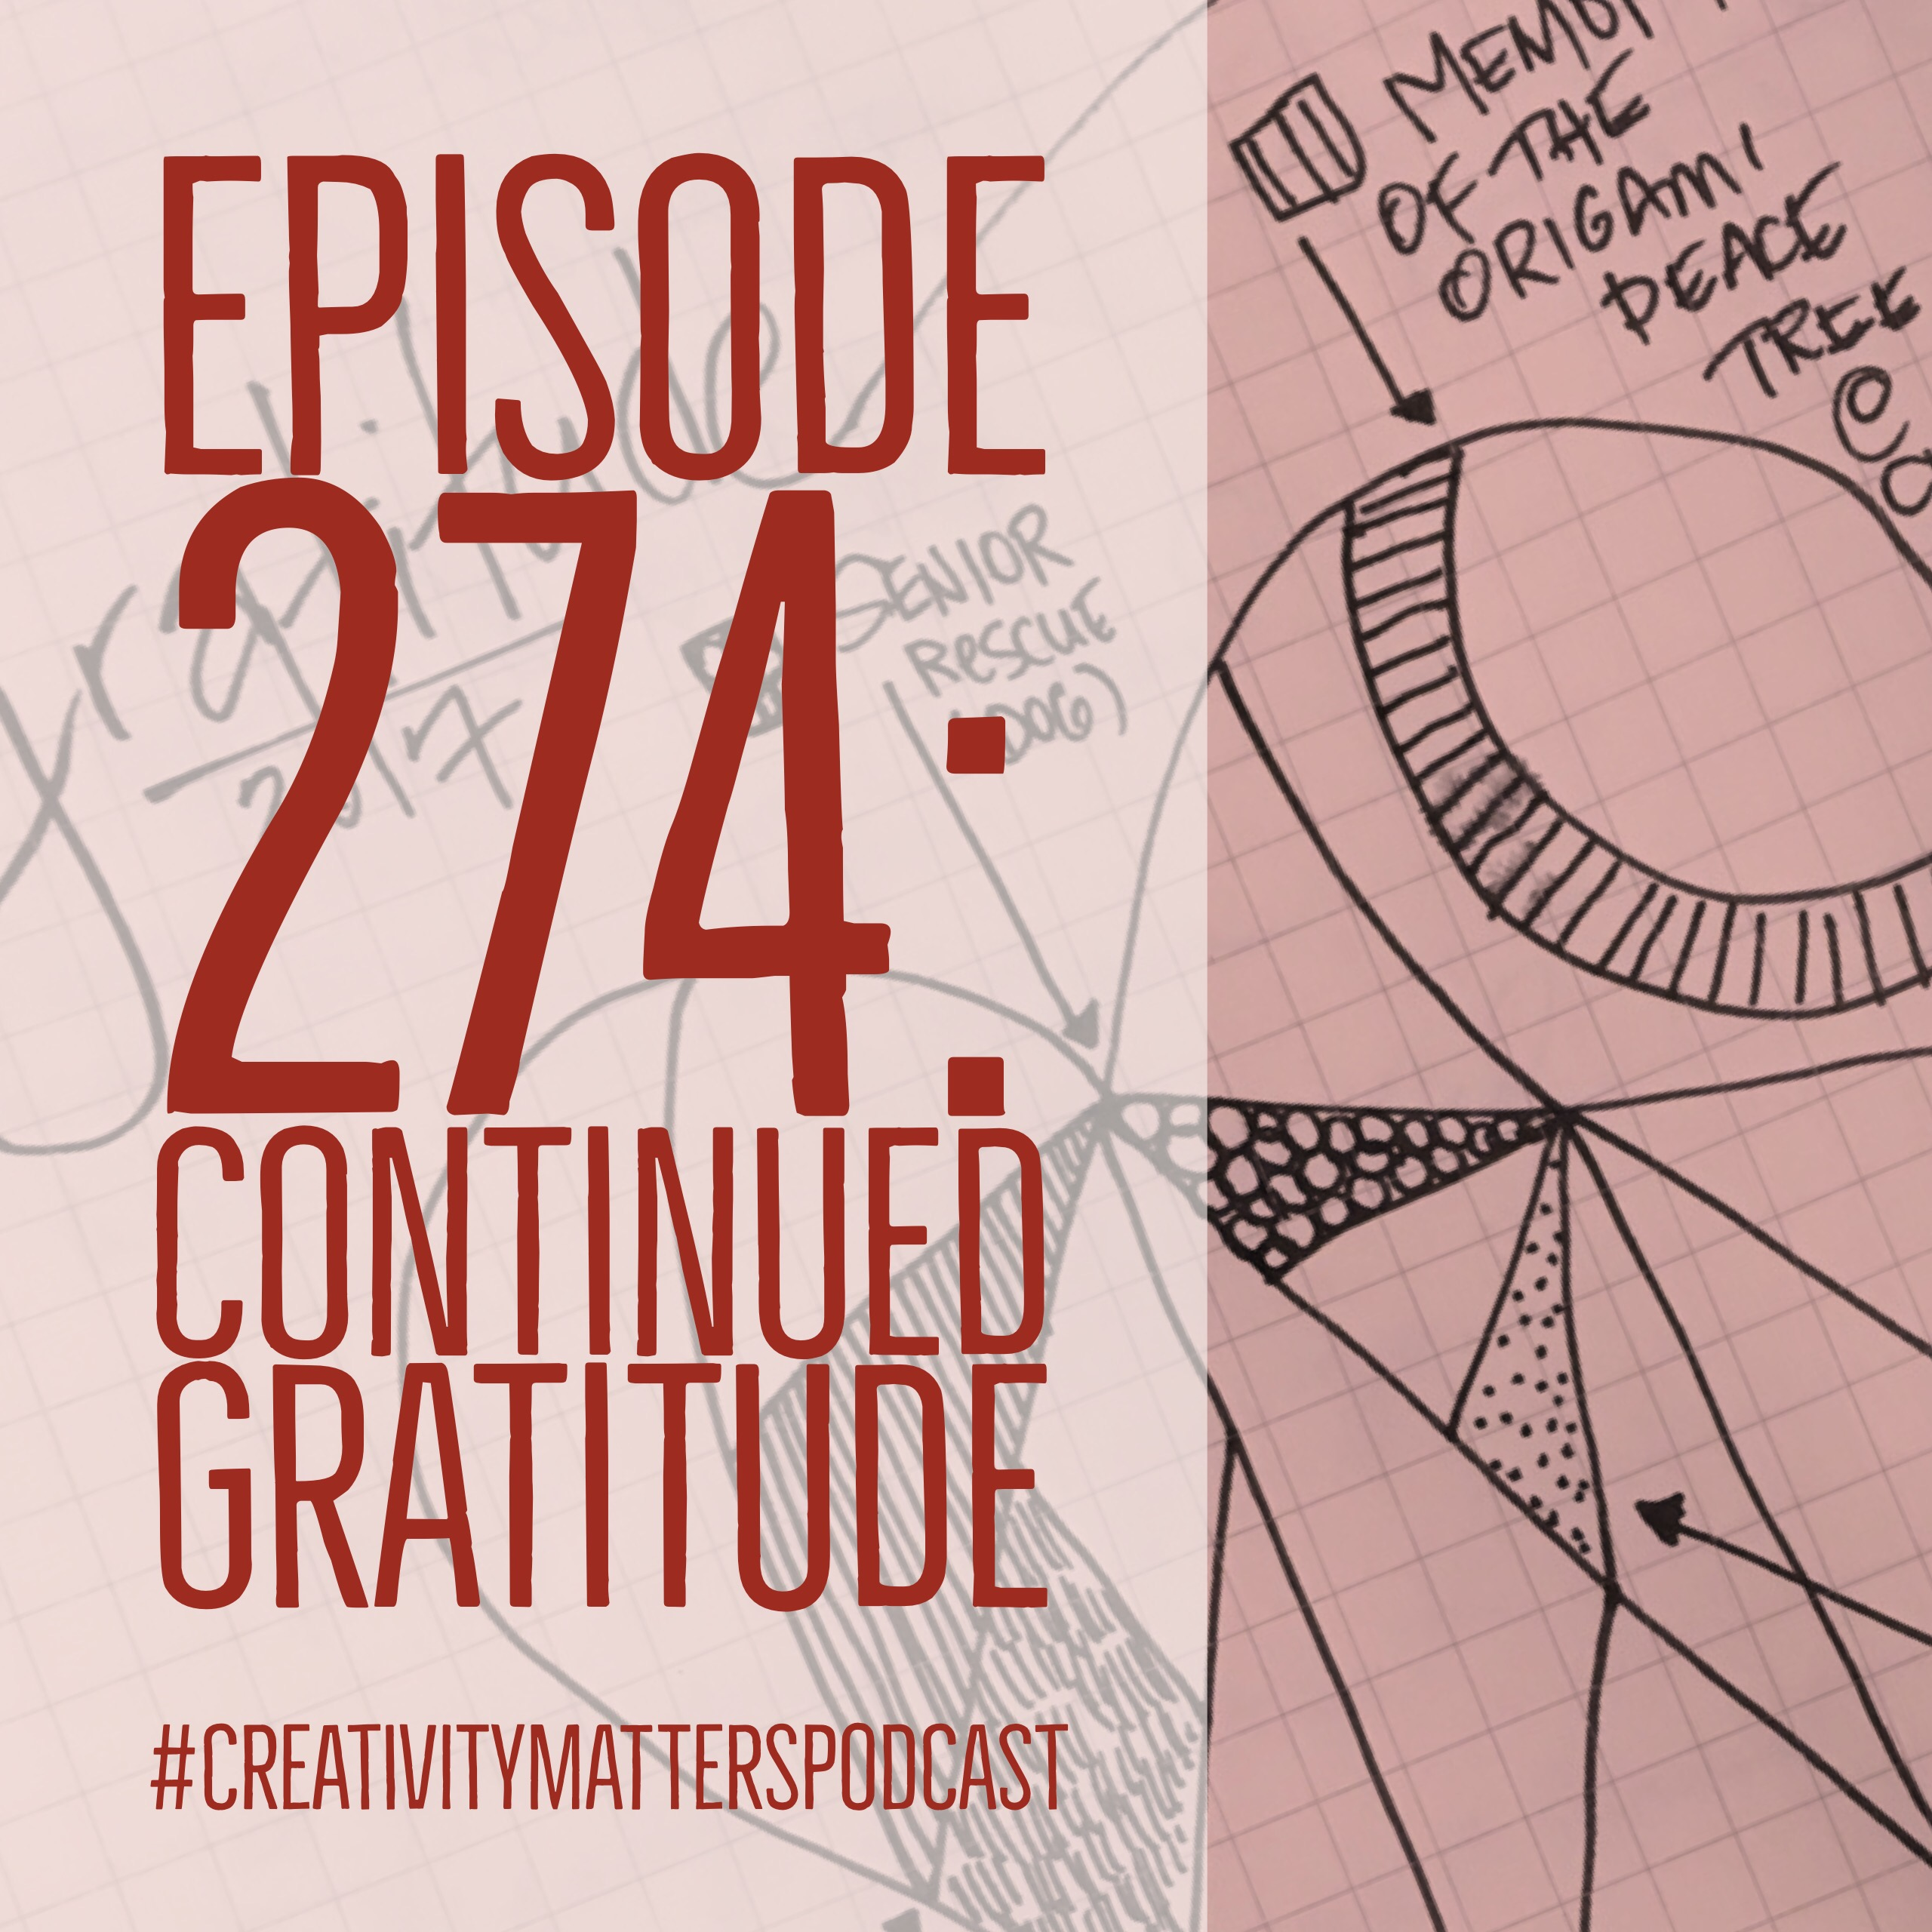 Episode 274: Continued Gratitude